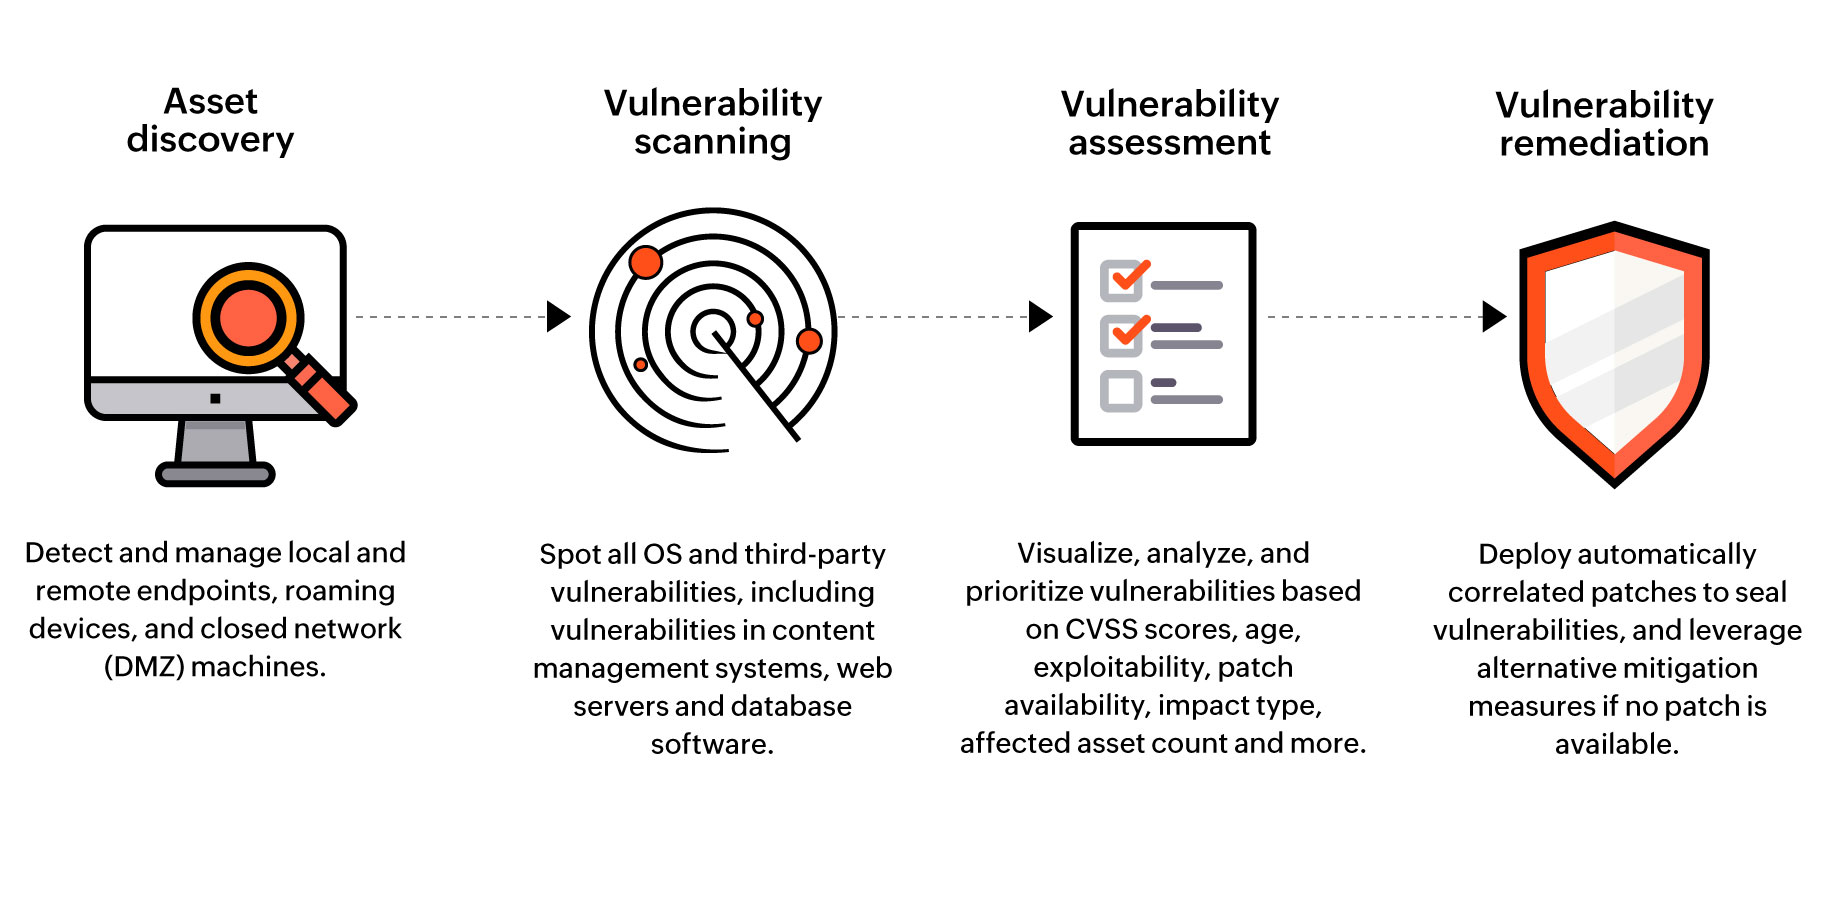 Vulnerability analysis steps comprise of asset discovery, vulnerability scanning, assessment, and vulnerability remediation.